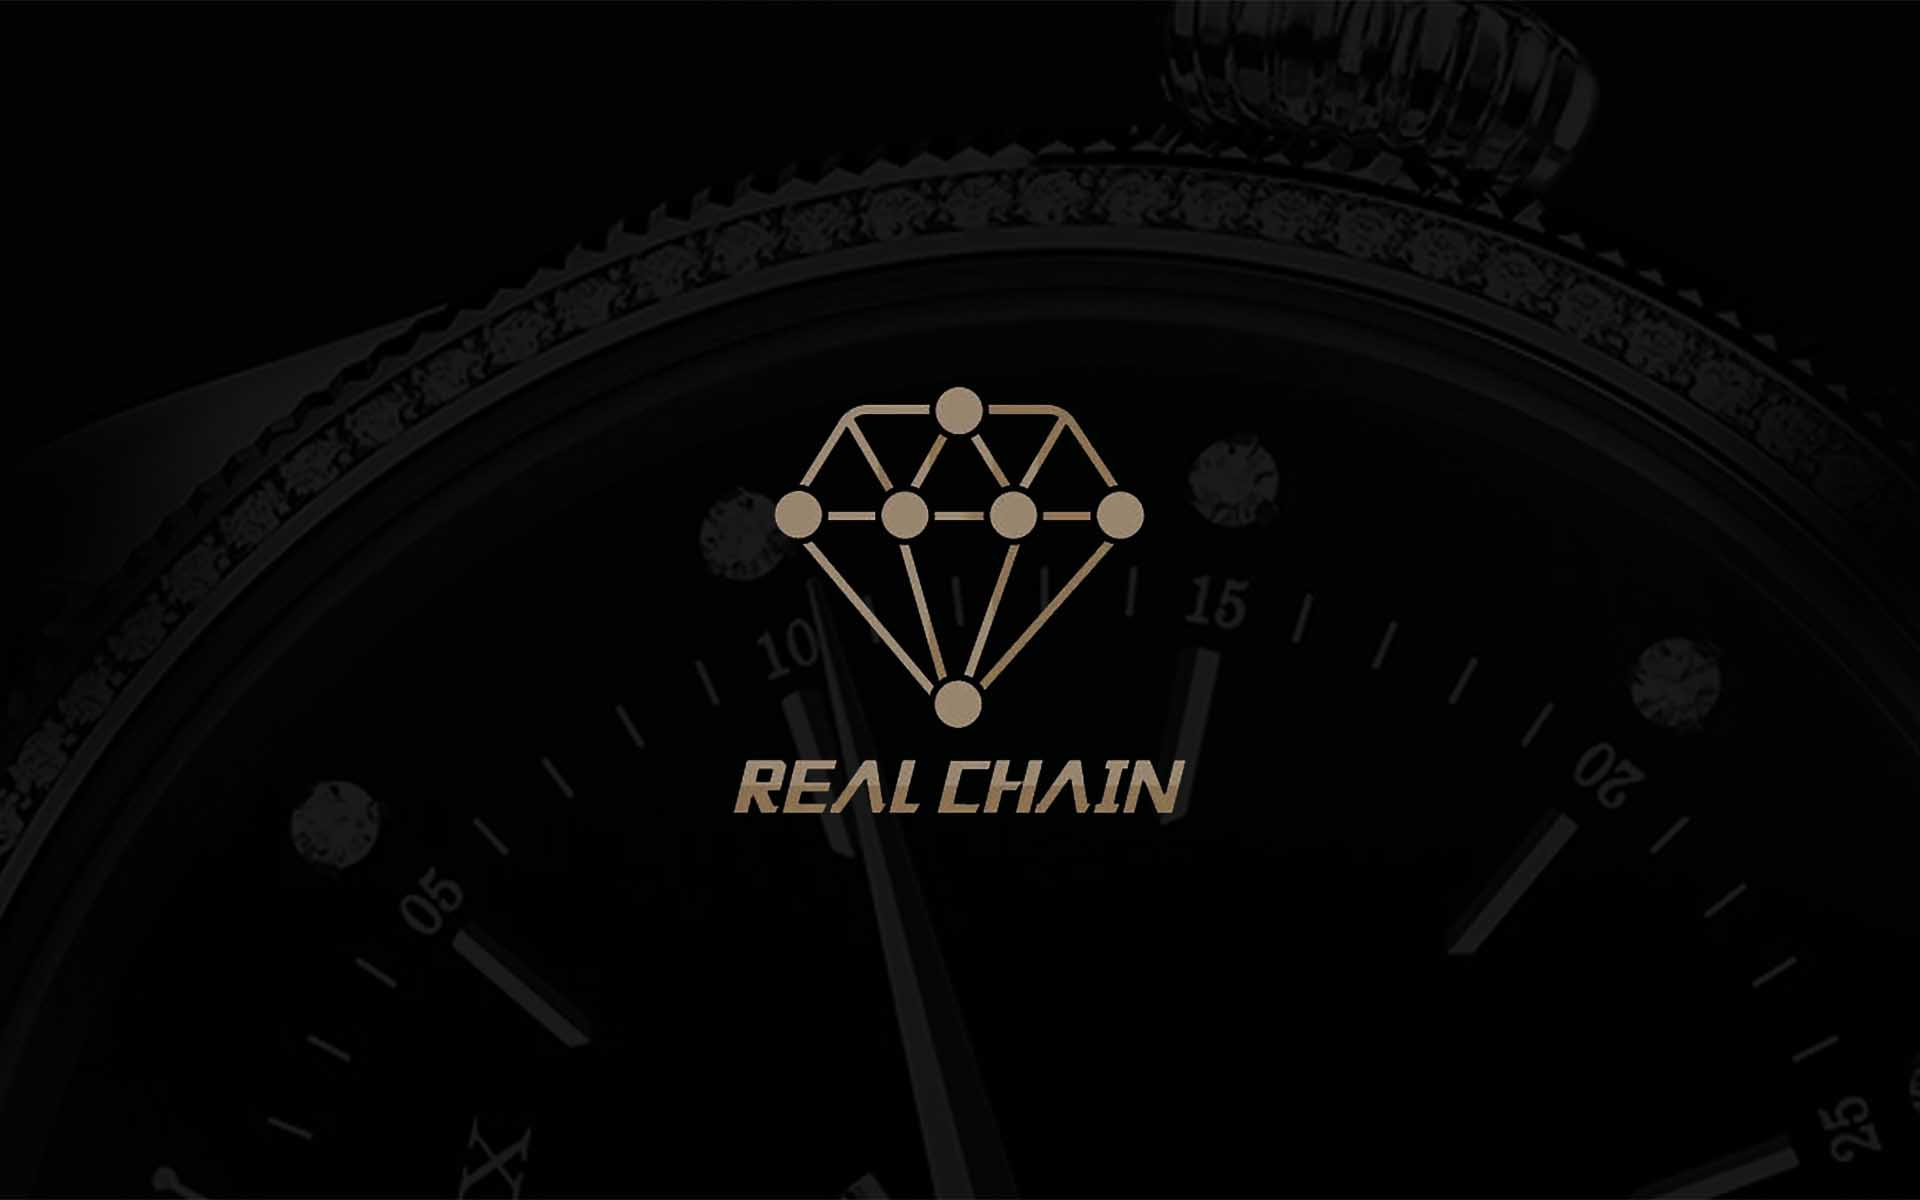 RealChain Has Real Life Applications in Preventing Counterfeit Sales